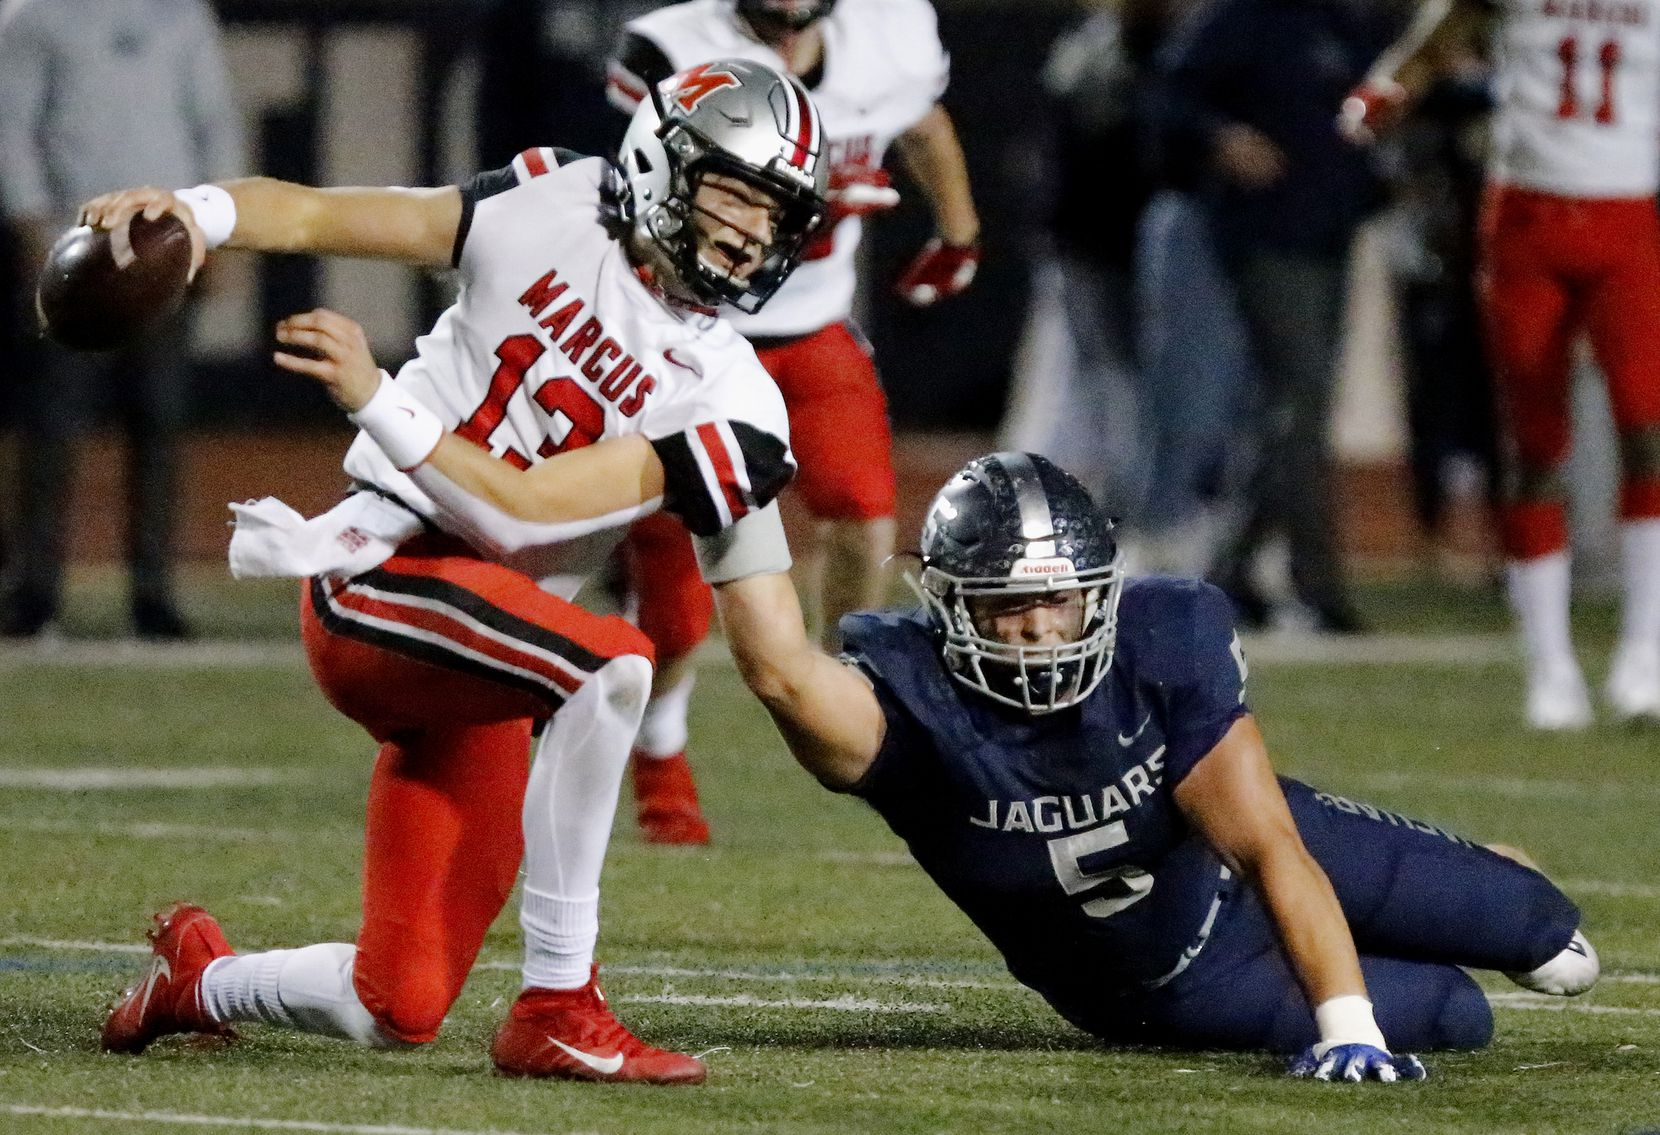 Flower Mound High School defensive end Stone Eby (5) brings down Flower Mound Marcus quarterback Garrett Nussmeier (13) for a sack during the first half as Flower Mound High School hosted Flower Mound Marcus High School at Neal E. Wilson Jaguar Stadium on Friday night, October 23, 2020. (Stewart F. House/Special Contributor)